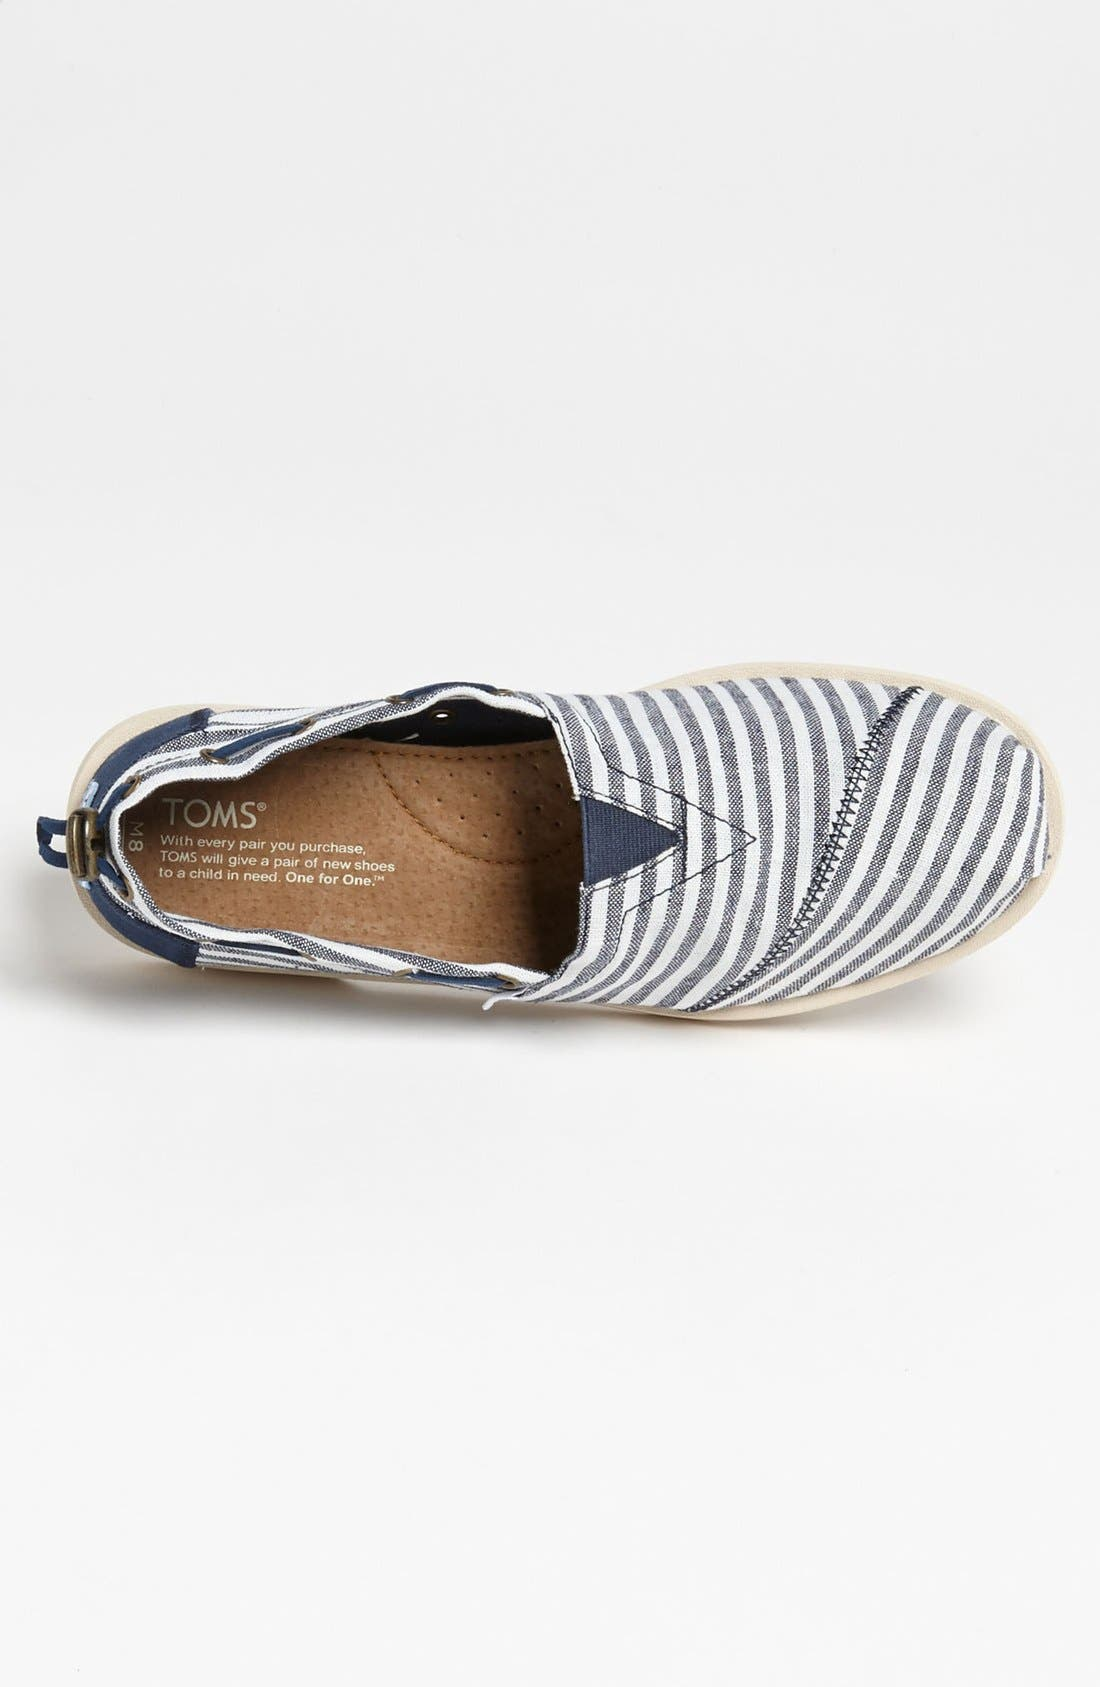 Alternate Image 3  - TOMS 'Bimini - Nautical' Boat Shoe (Men)